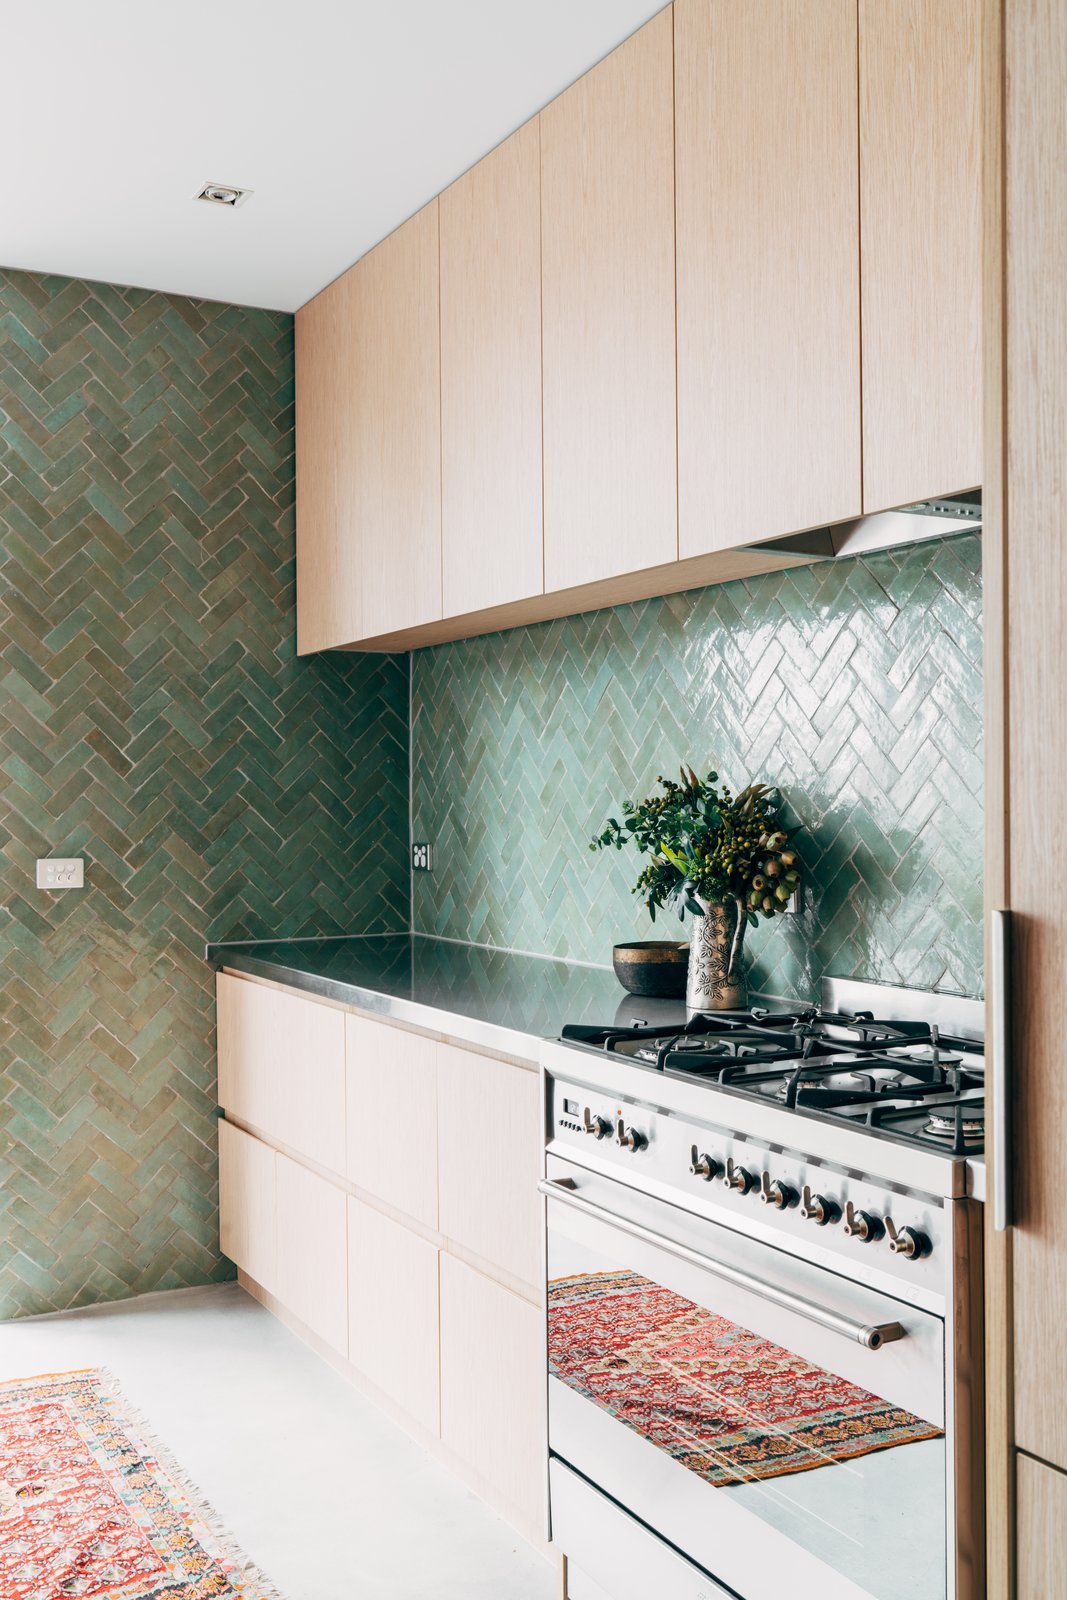 5 Tile Companies That Can